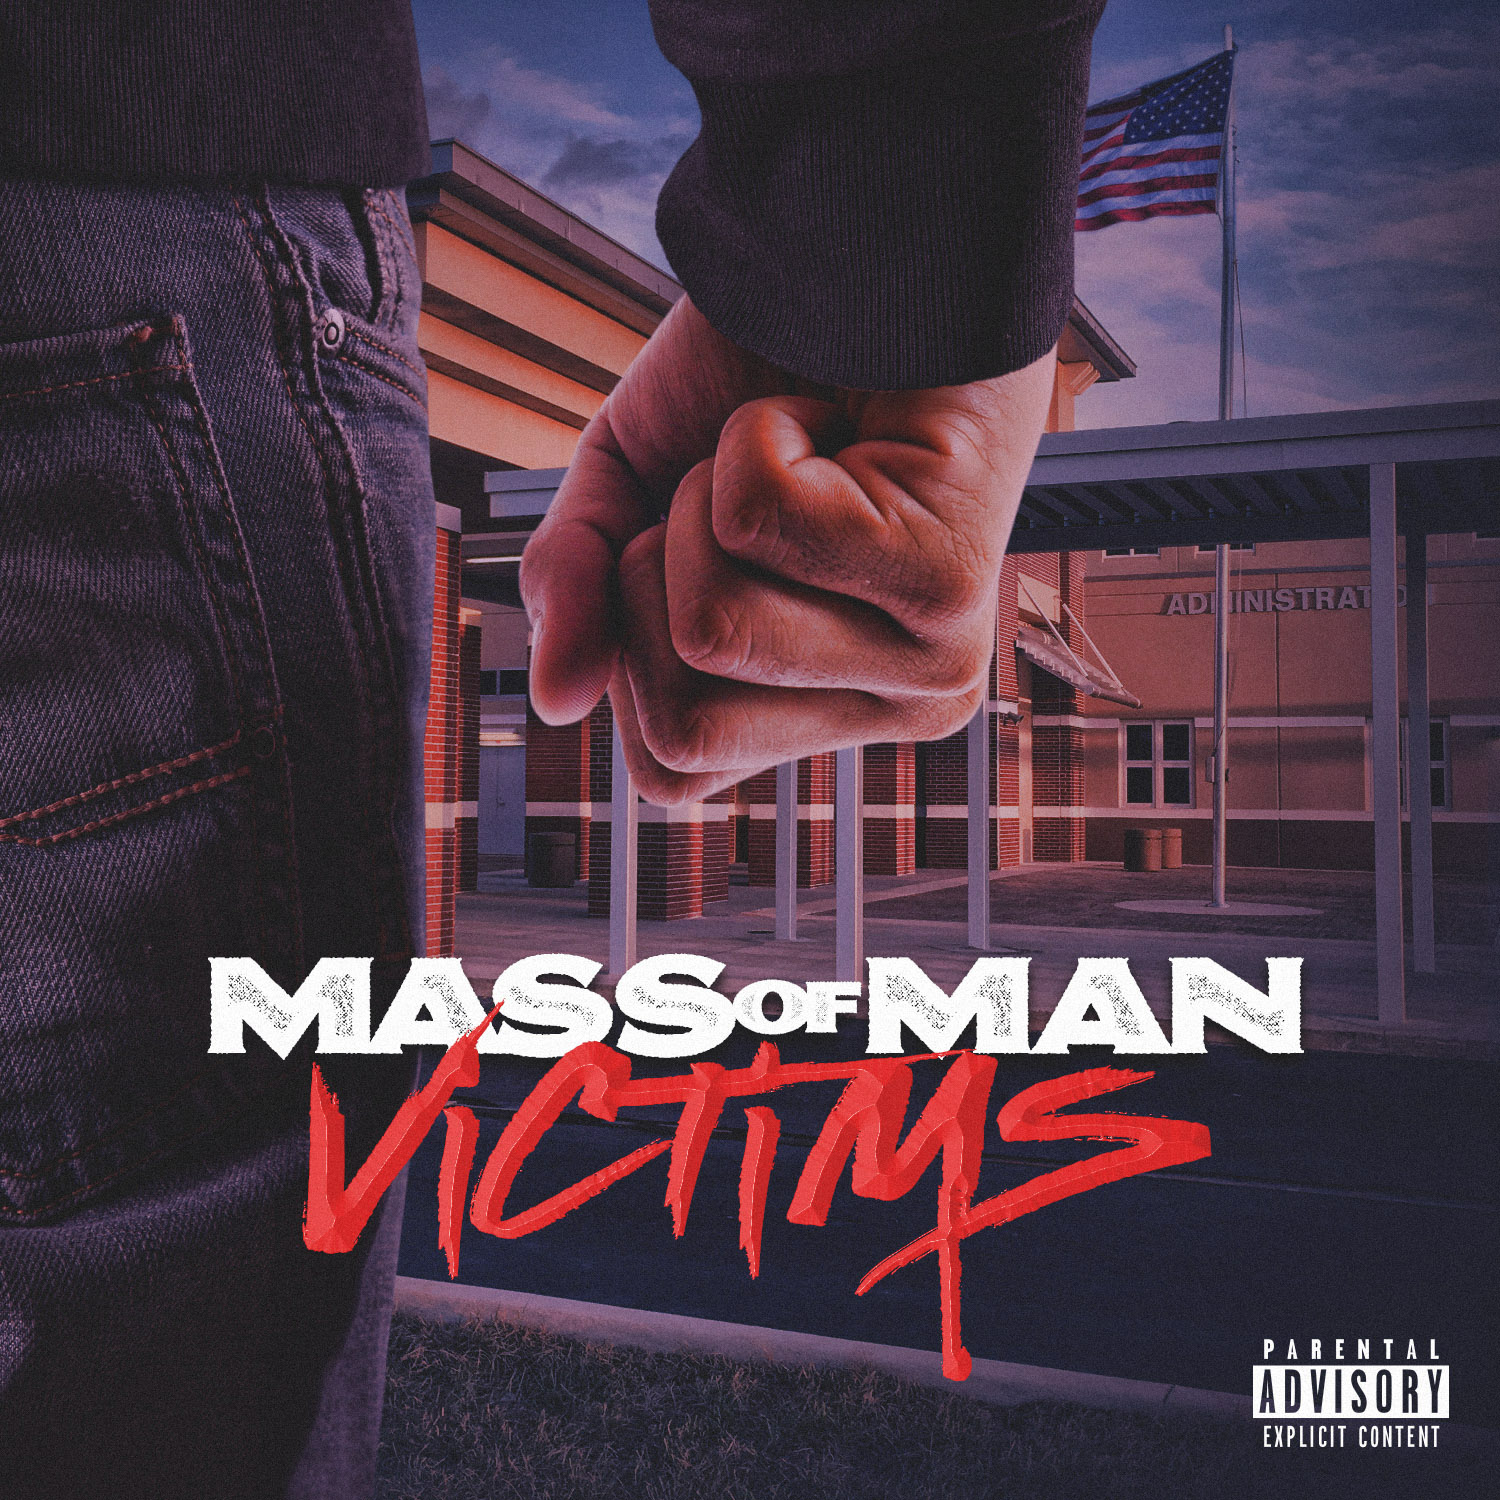 Victims Cover Fist 2